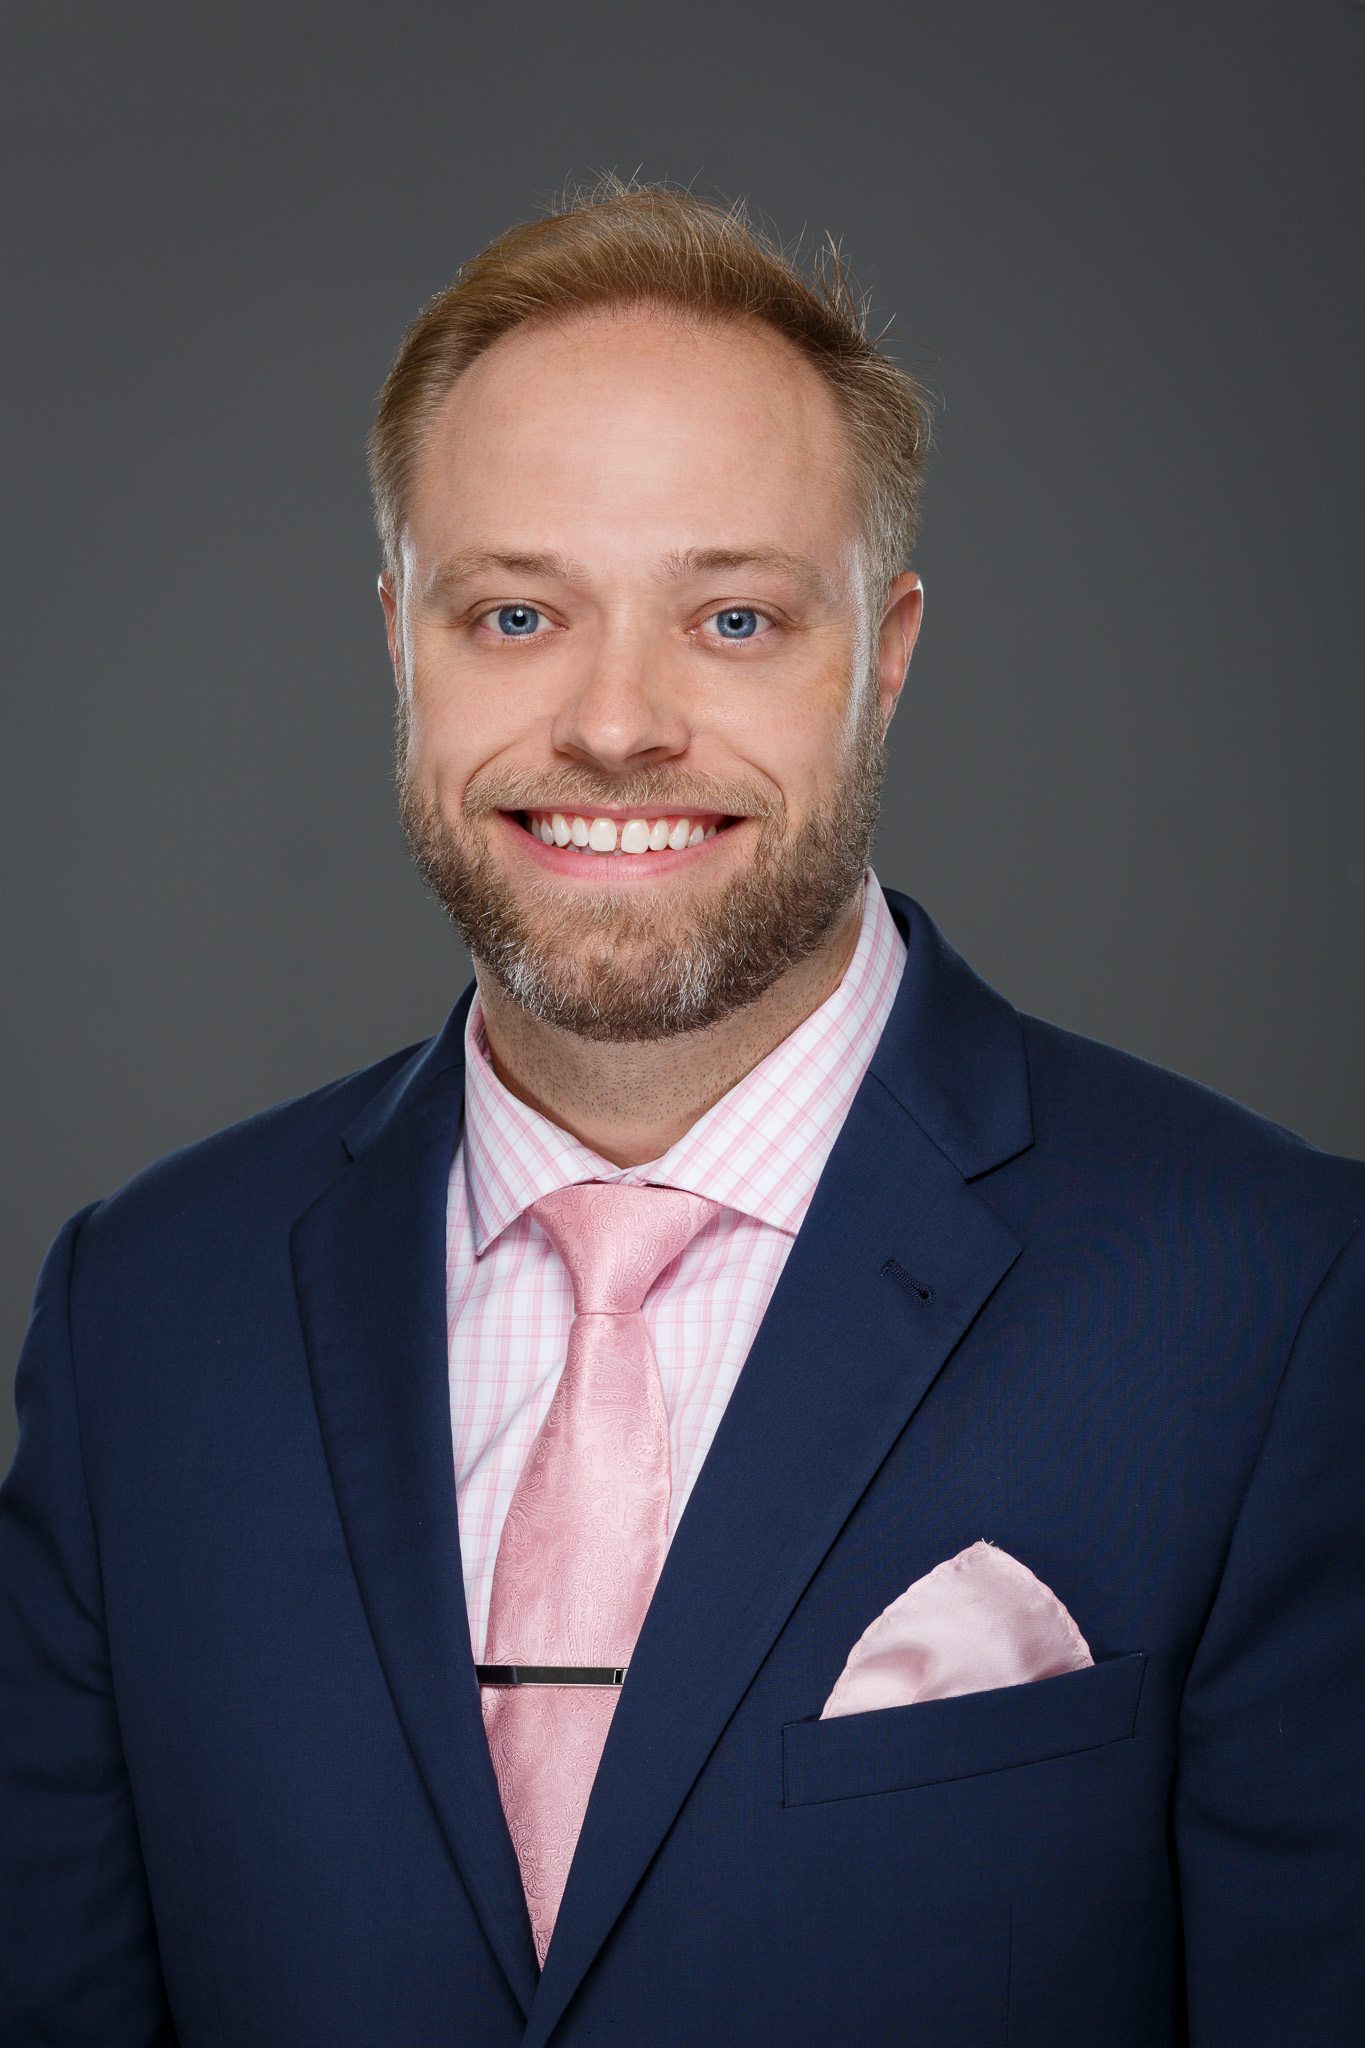 headshot of David Sattelmeyer, REALTOR®